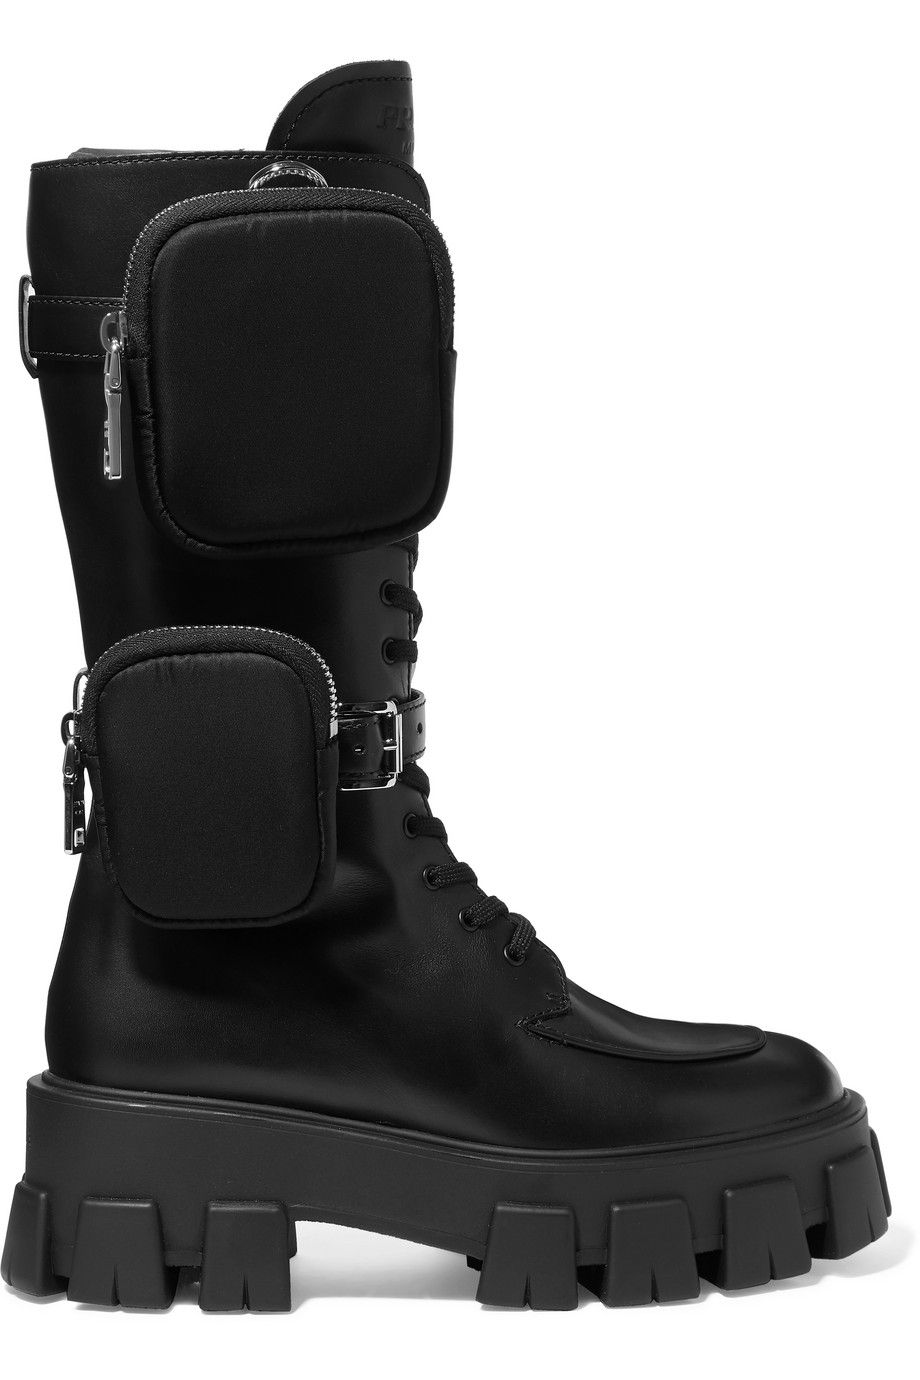 Prada-buckled-leather-and-shell-platform-boots-net-a-porter